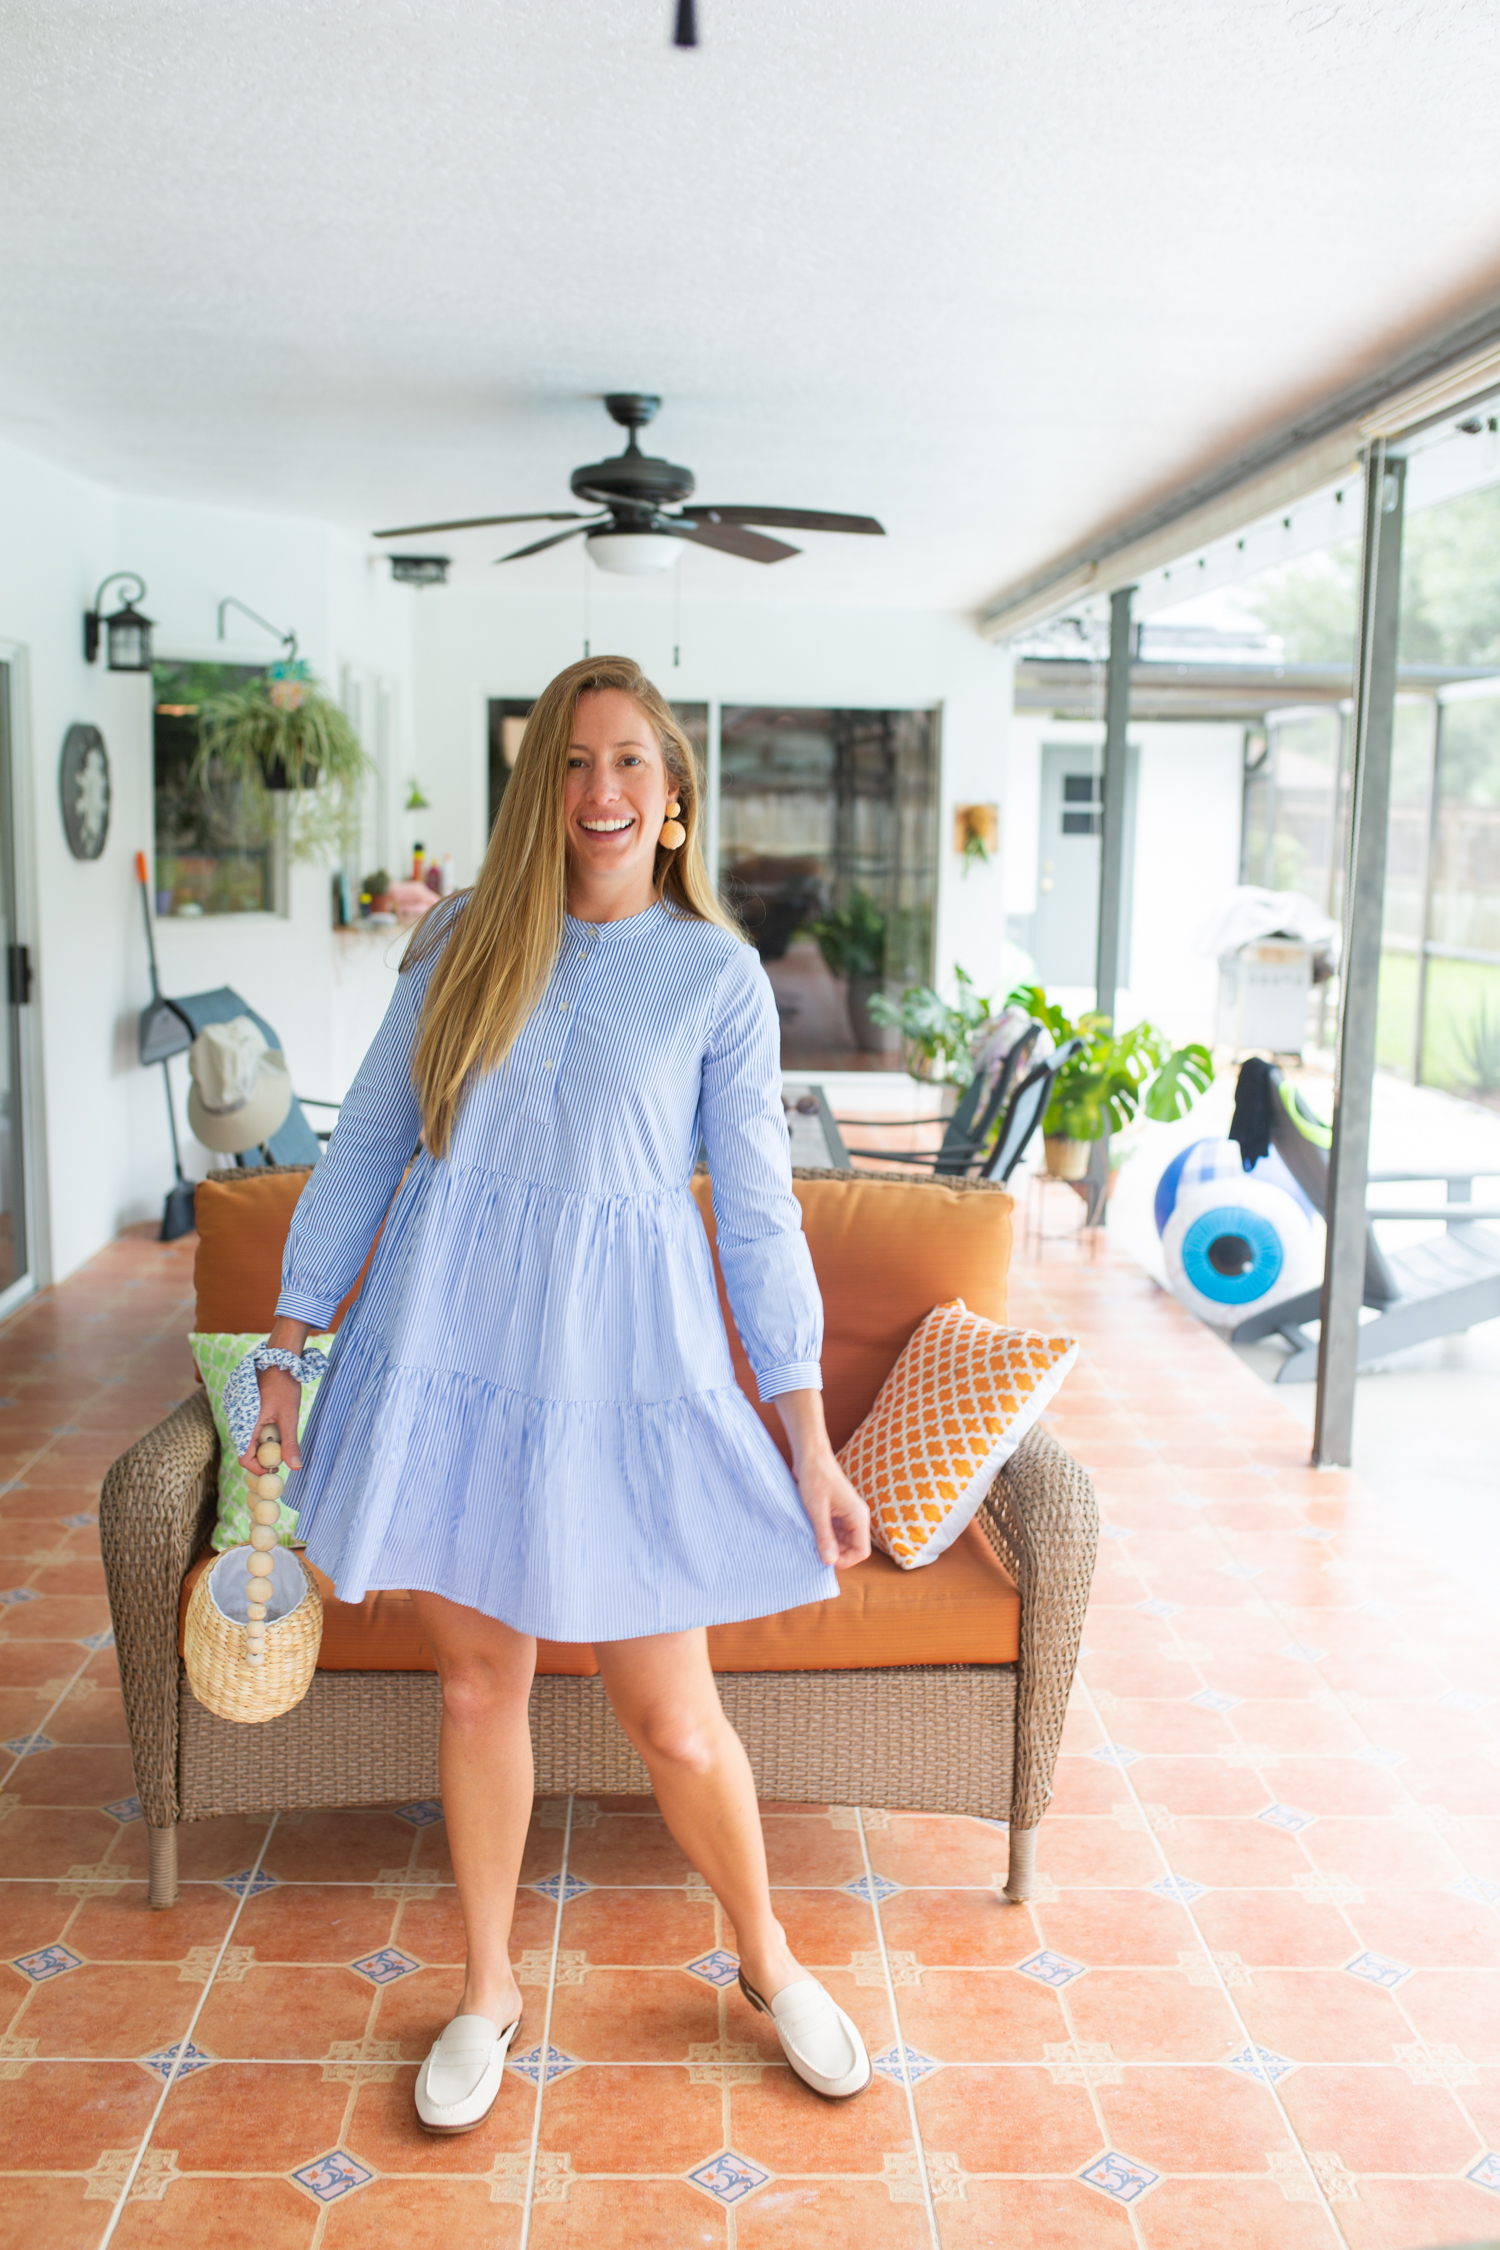 How to Dress Preppy on a Budget / Preppy Women's Outfits / Spring Outfits Preppy / Preppy Outfits Summer / Preppy Essentials / Blue Striped Dress / Where to Buy Preppy Clothes / Second Hand Preppy Clothes -Sunshine Style, A Florida Fashion and Lifestyle Blog